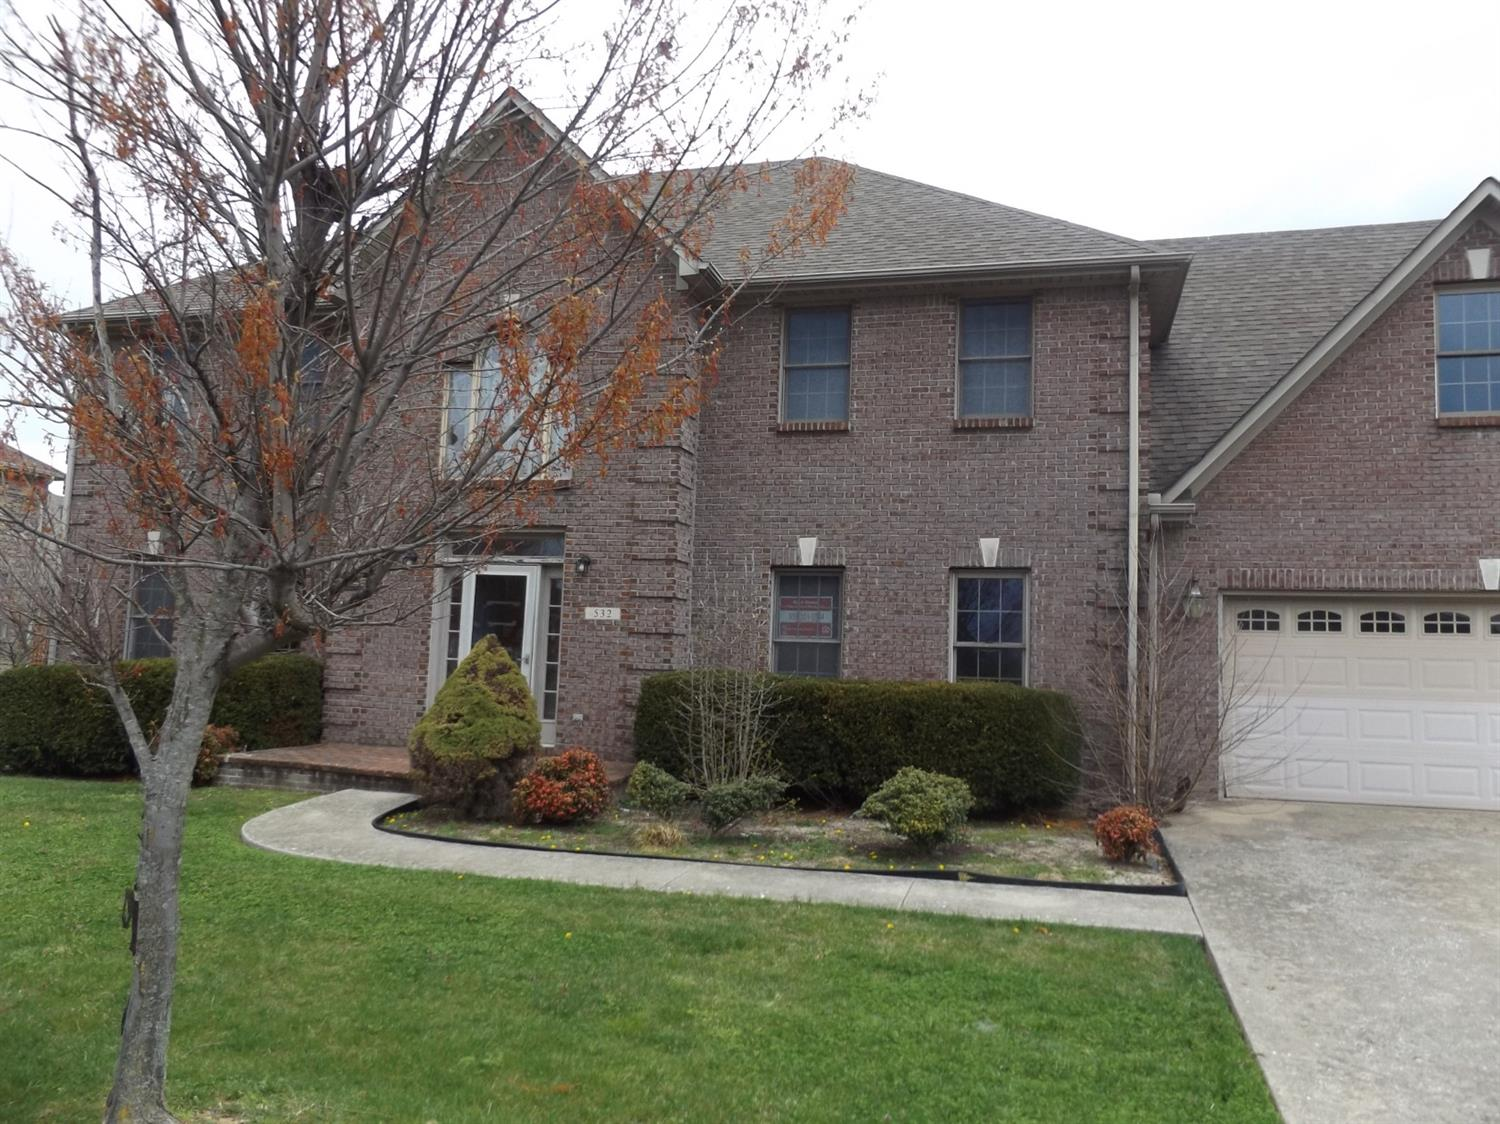 Home For Sale at 233 Park Lakes Dr, Richmond, KY 40475